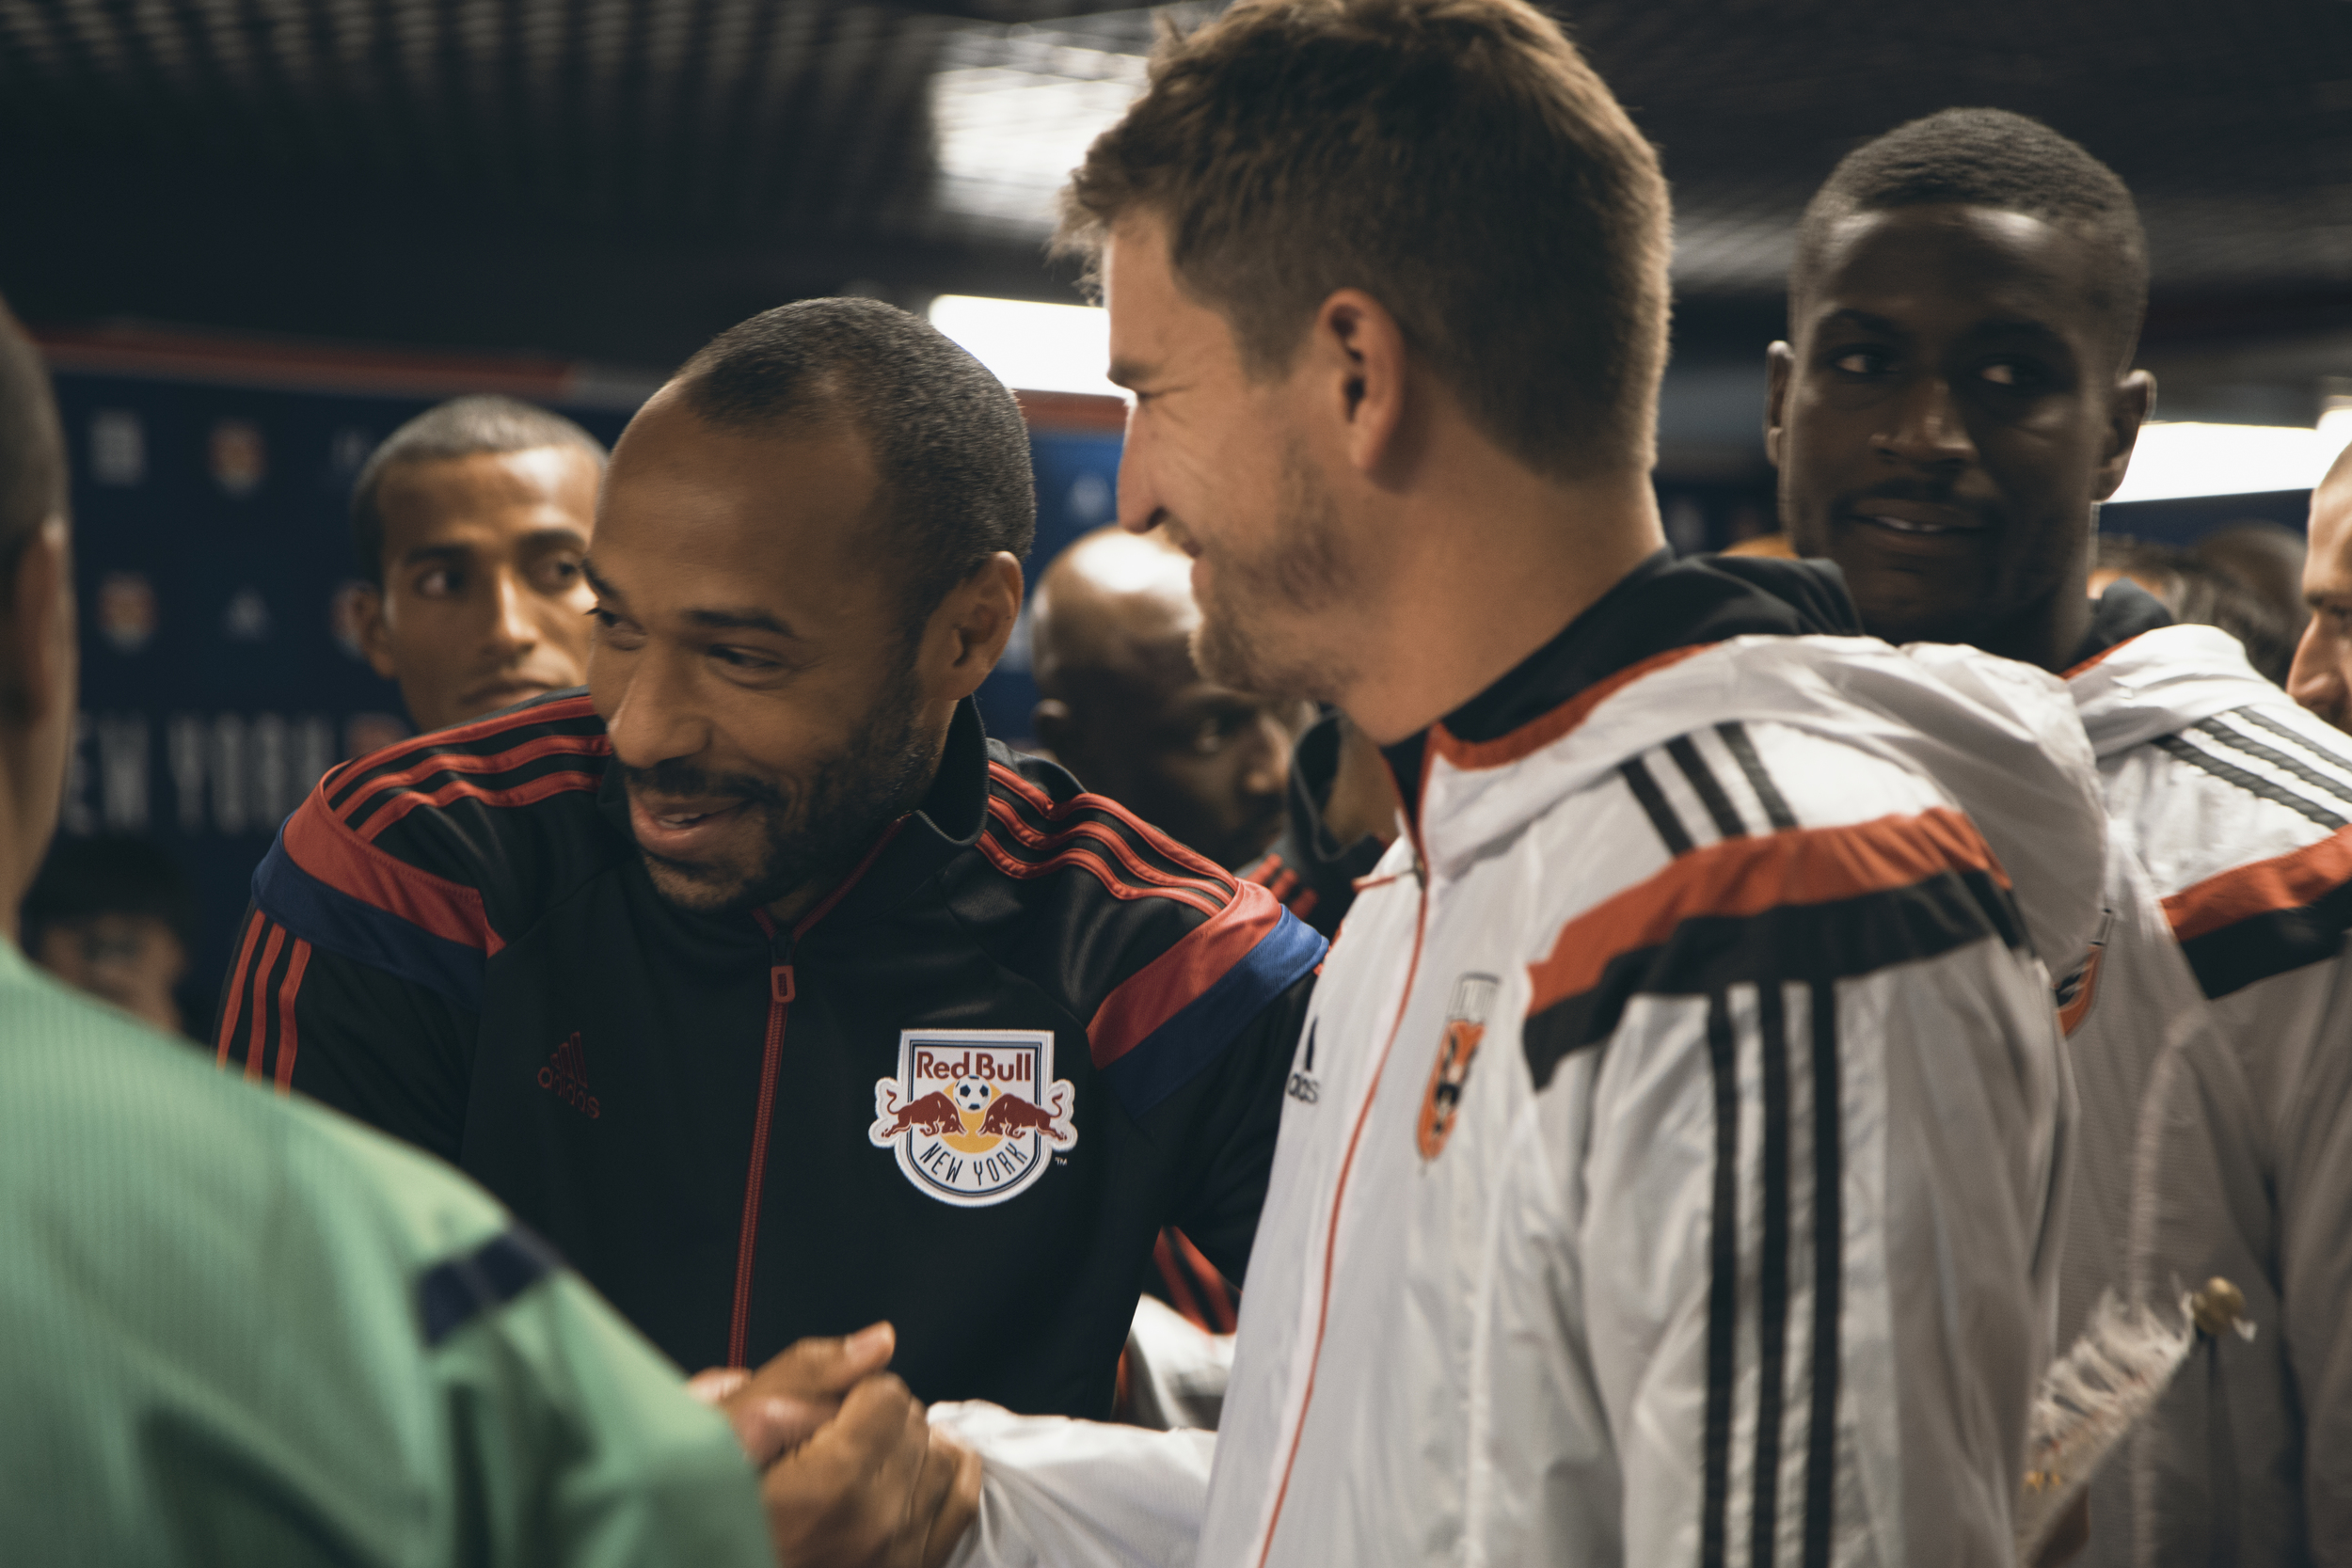 thierry henry and bobby boswell.jpg